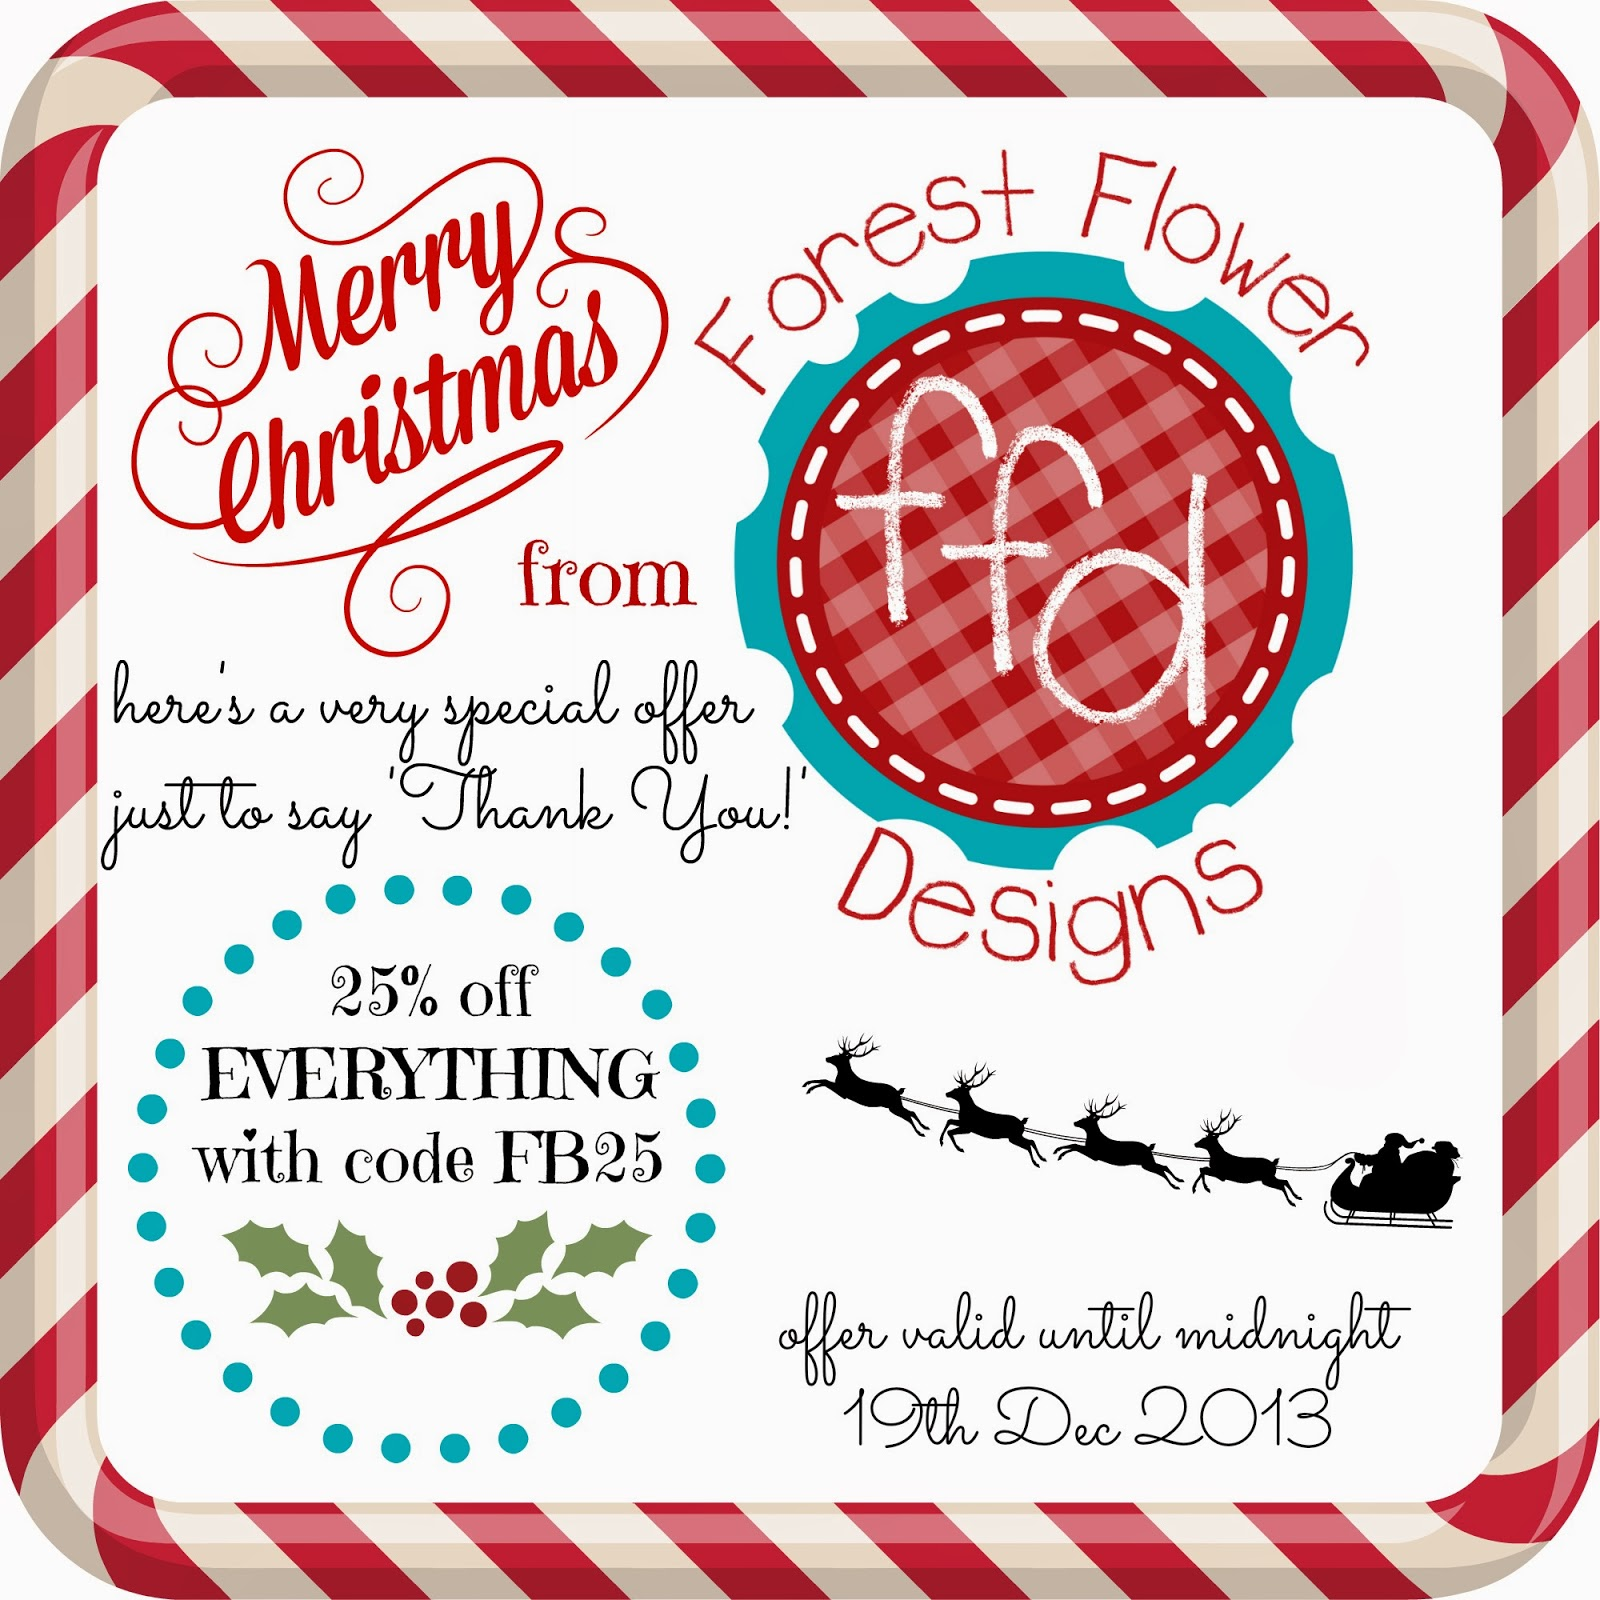 forest flower designs Special Christmas Discount Code